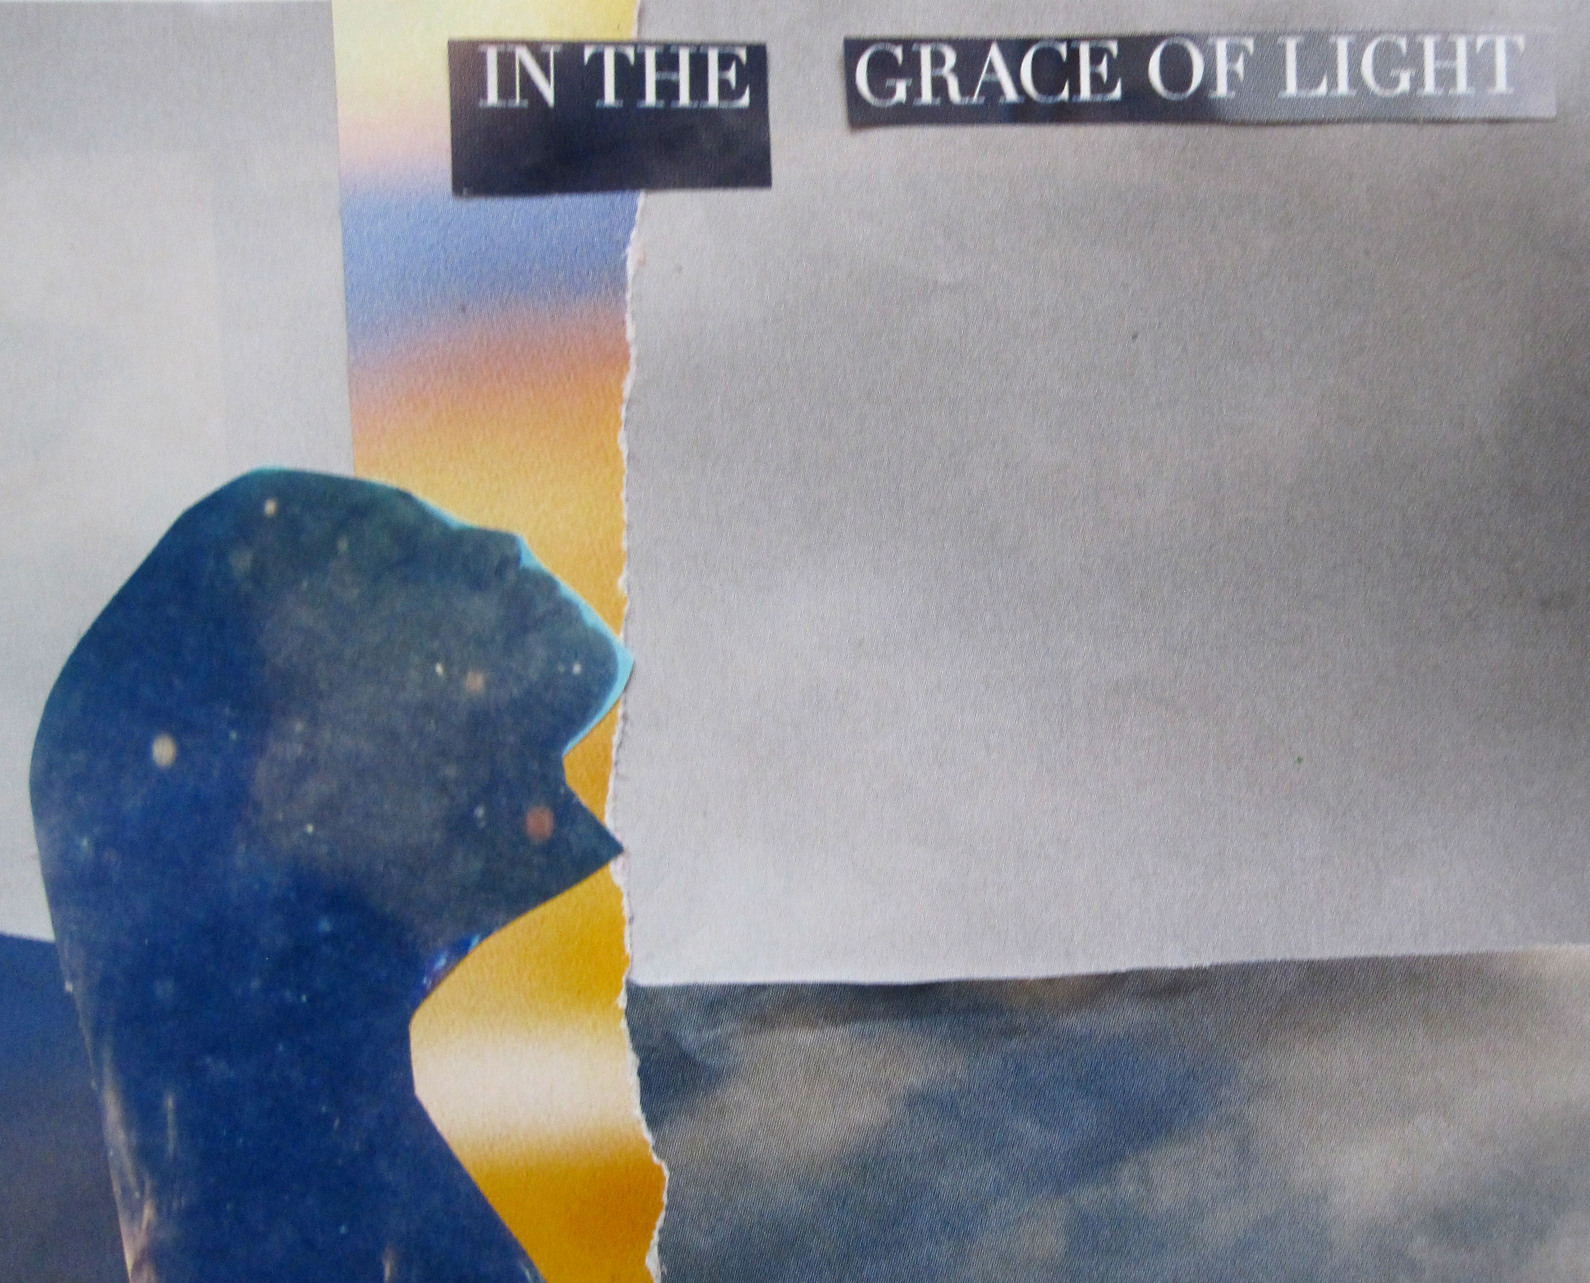 grace of light s